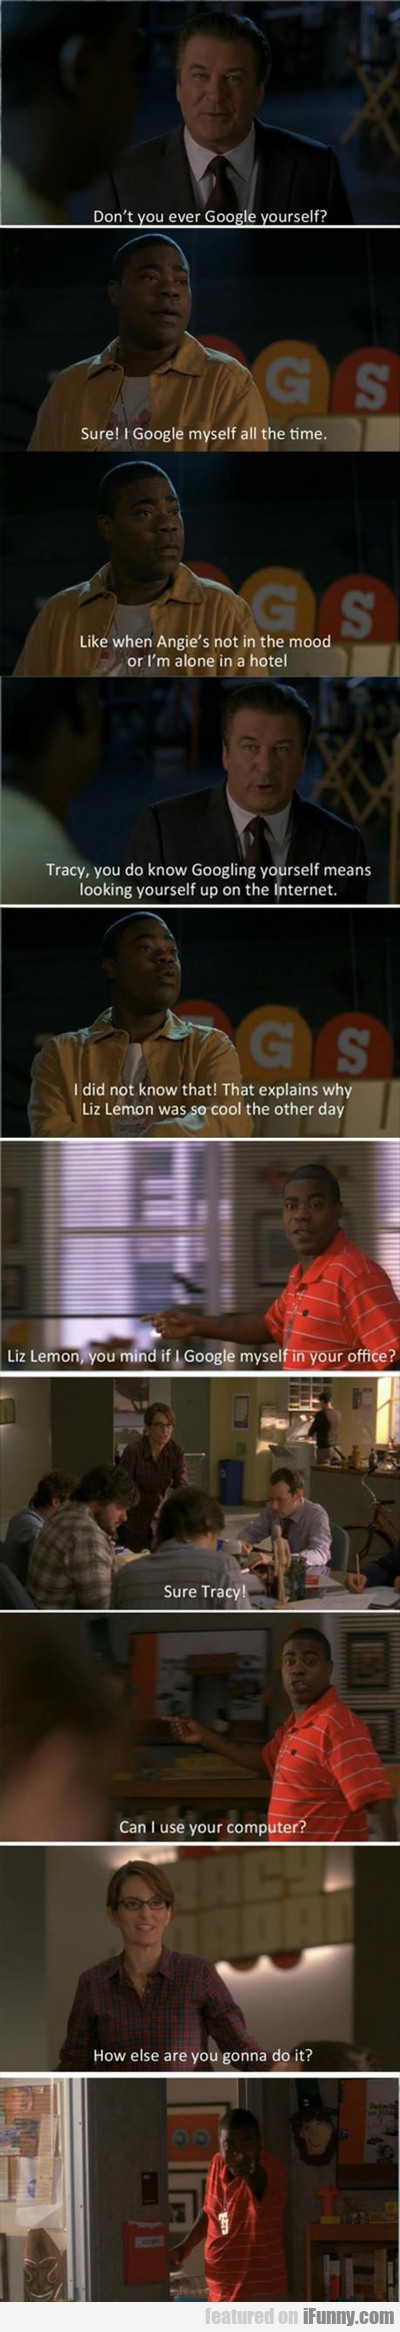 Do You Ever Google Yourself?